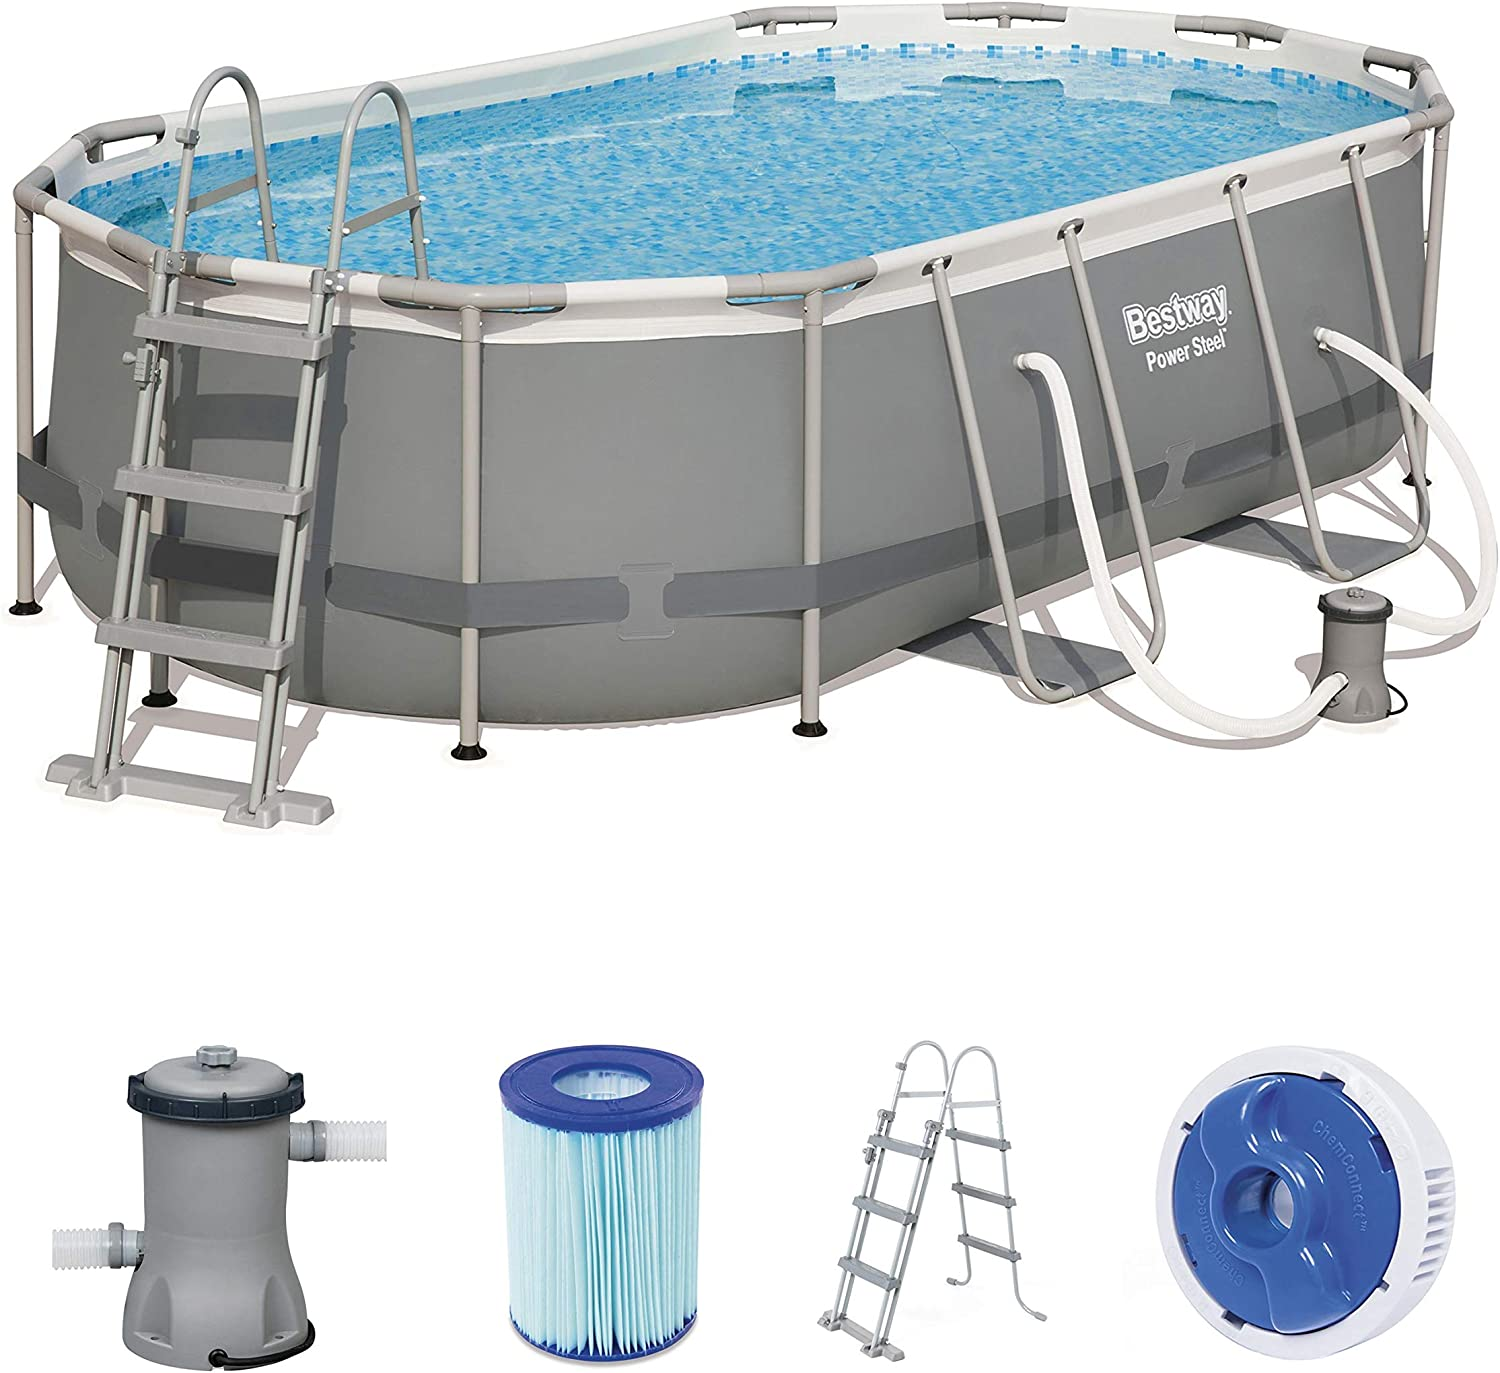 Bestway 56620 Power Steel Pool 424 X 250 X 100 CM, Ovalado Marco ...